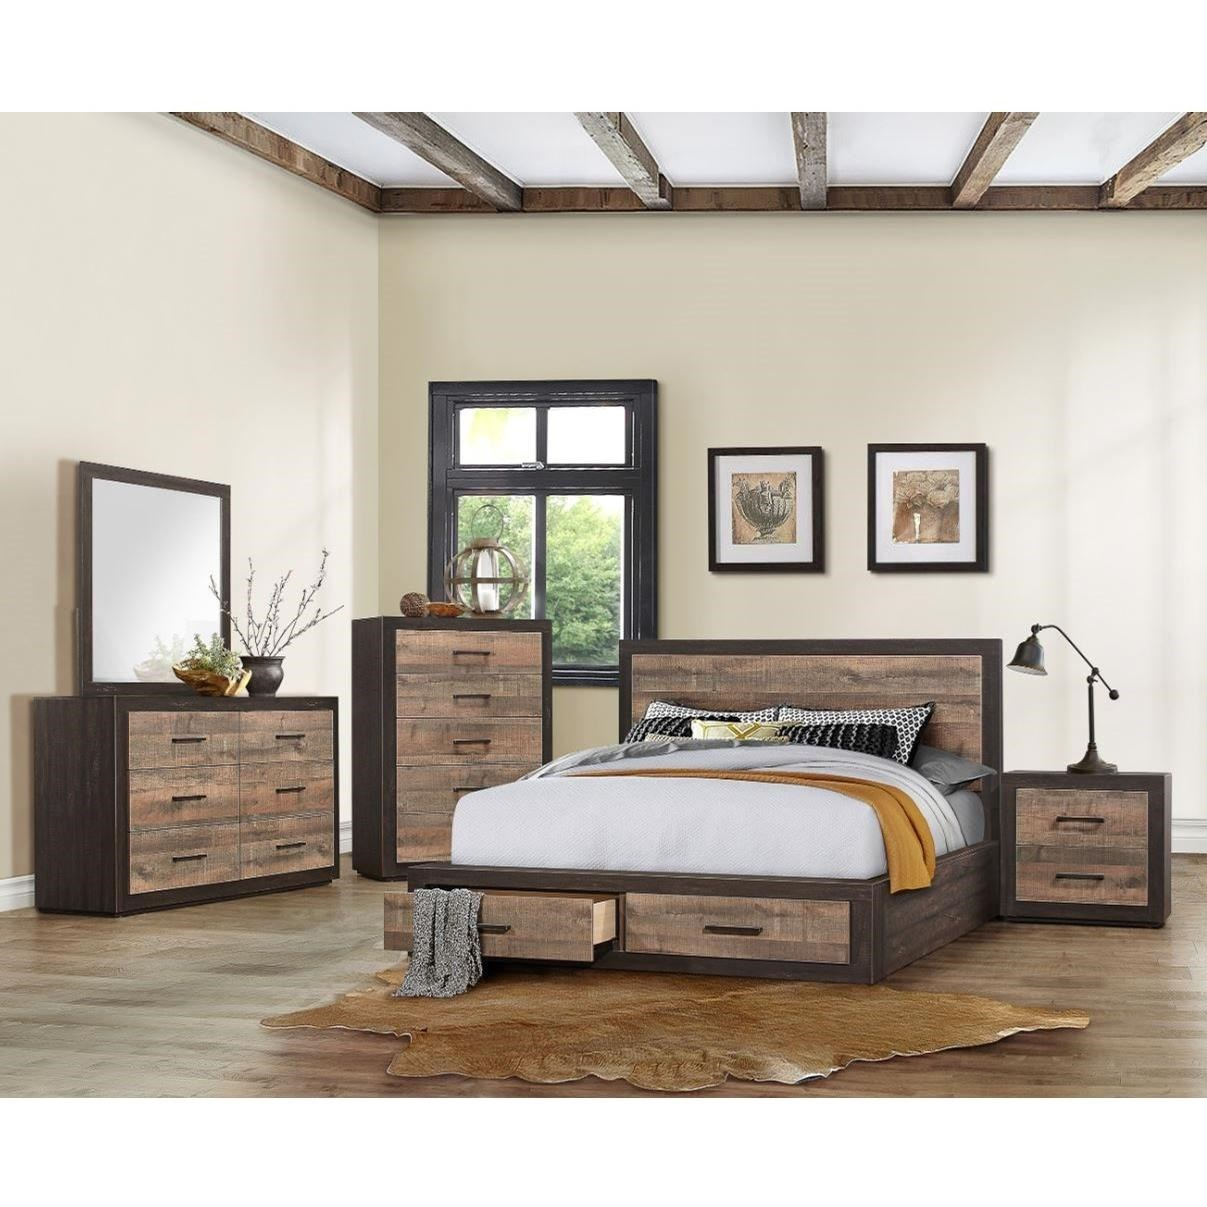 Miter California King Bedroom Group by Homelegance at Rife's Home Furniture